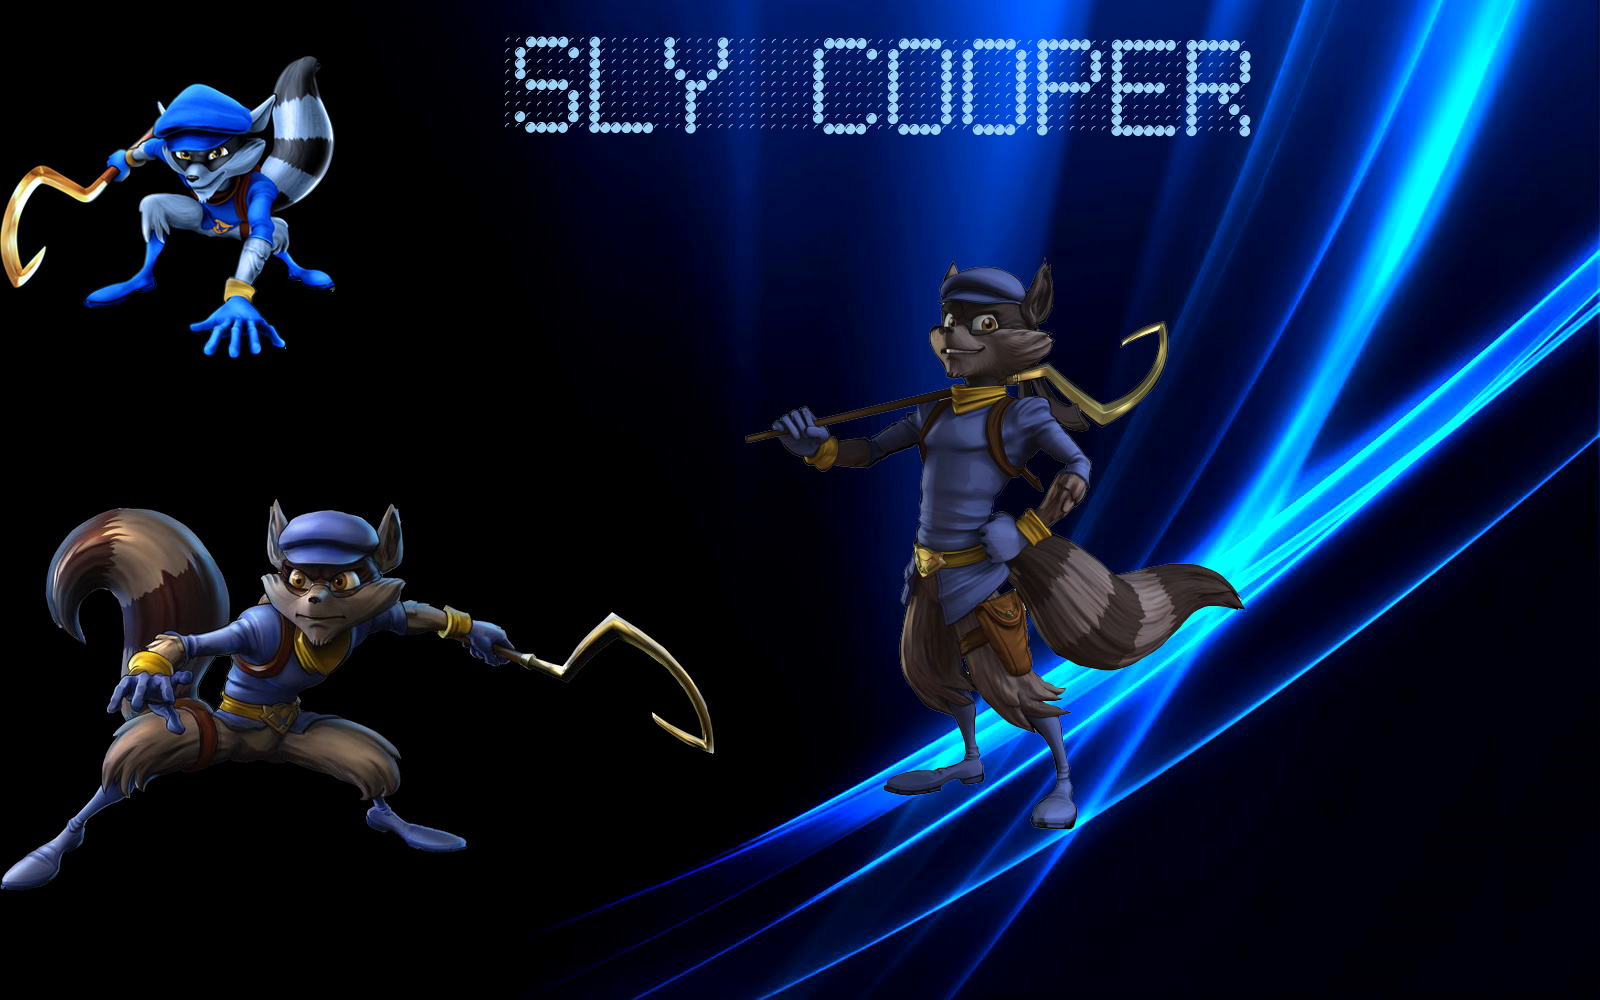 sly cooper wallpaper by mordecai9999 customization wallpaper mac pc os 1600x1000